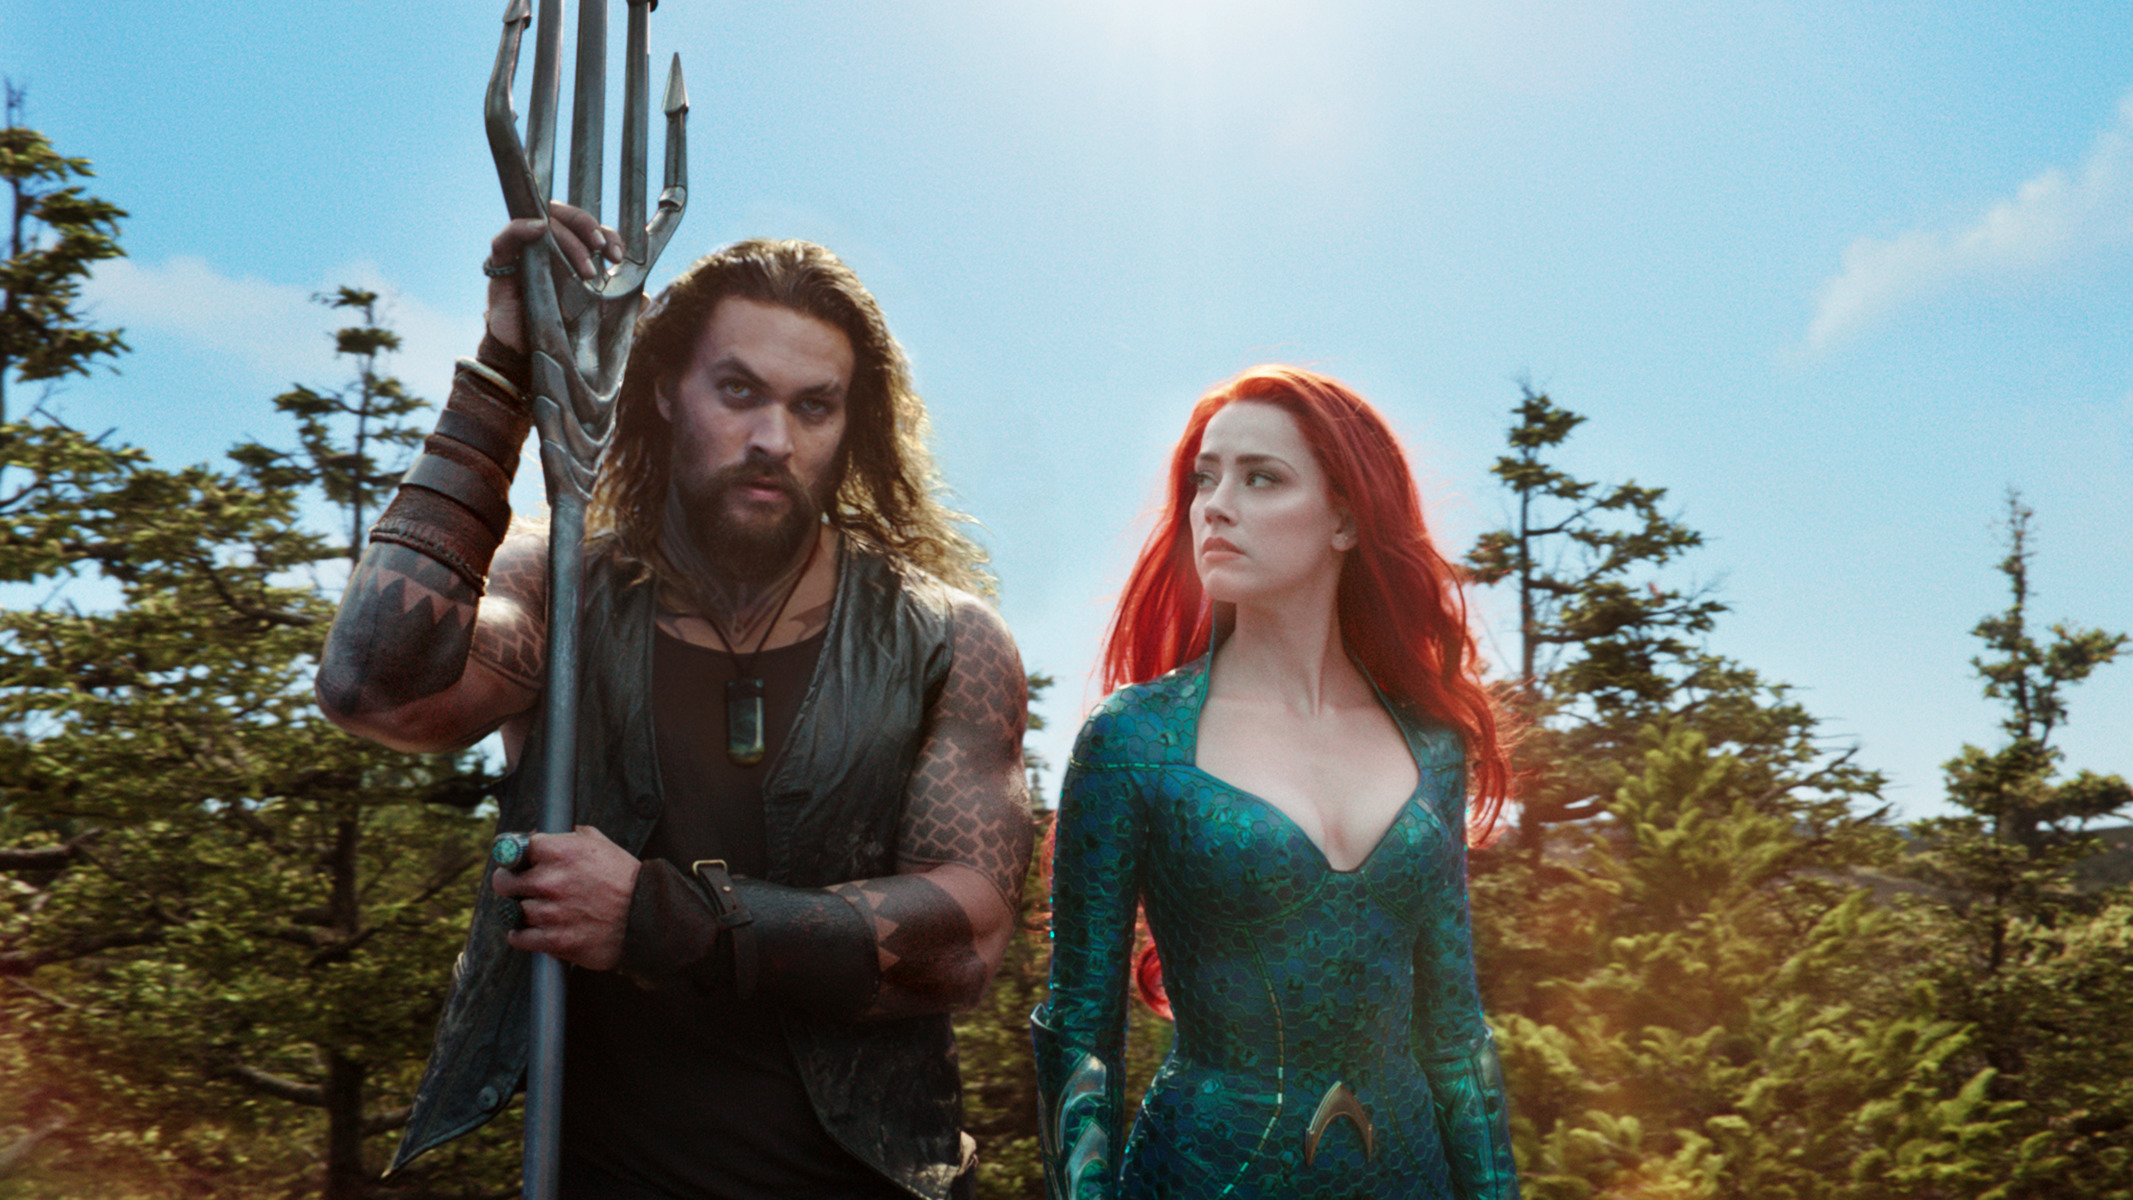 Petition To Axe Amber Heard From 'Aquaman 2' Snags Upwards 1.5M Signatures – Deadline